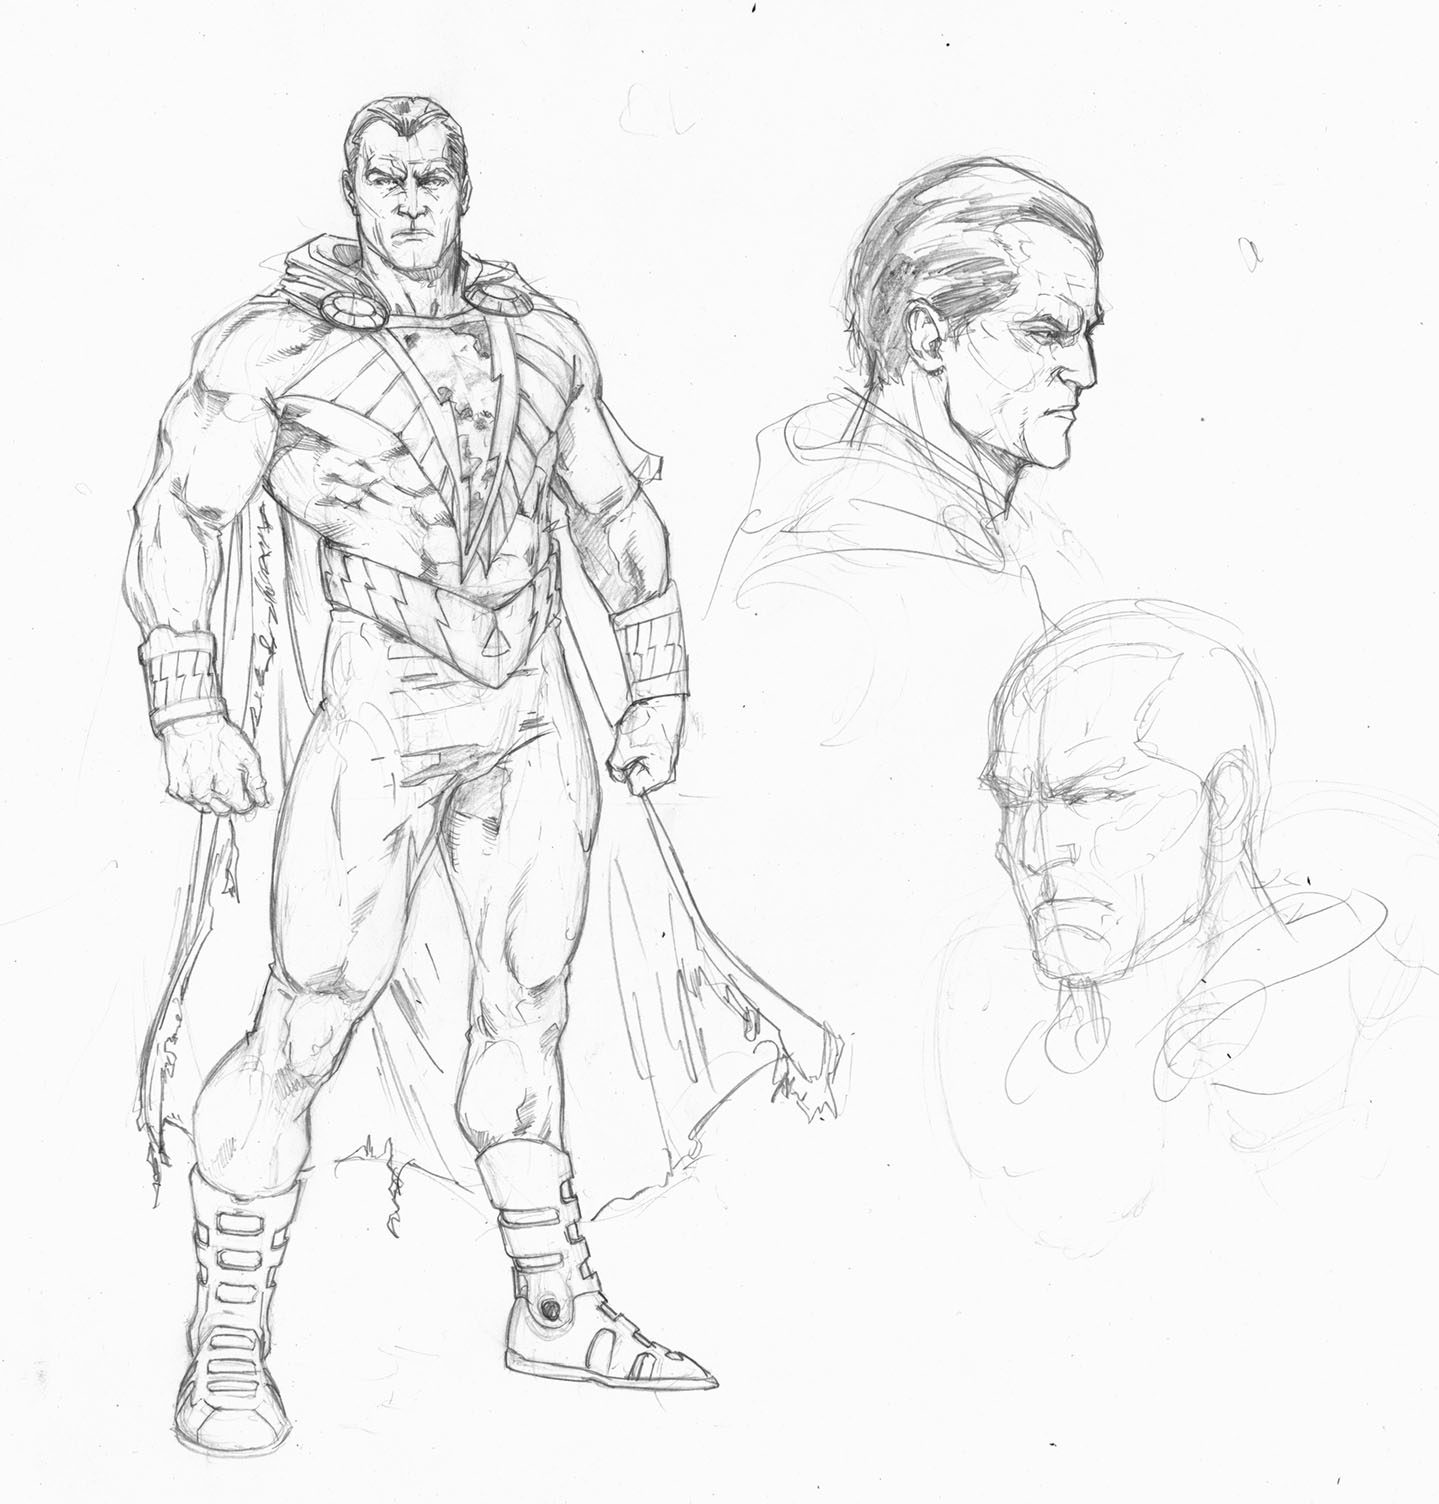 What's New In The New 52: Black Adam Stars in Solo One